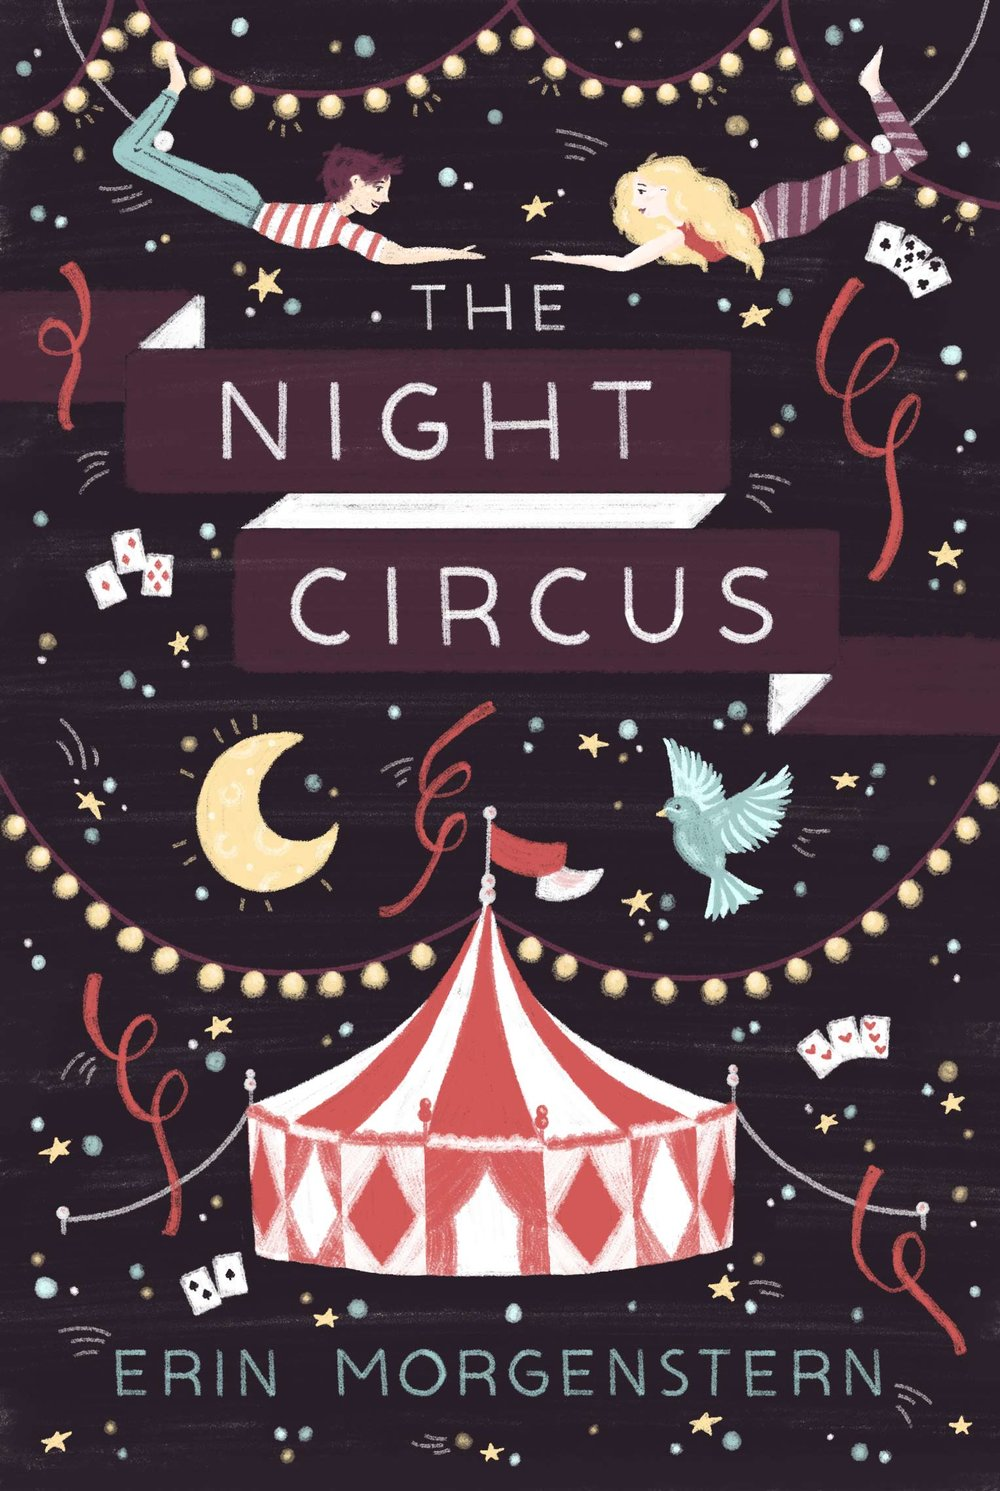 Illustrated The Night Circus book cover, circus tent and acrobats.